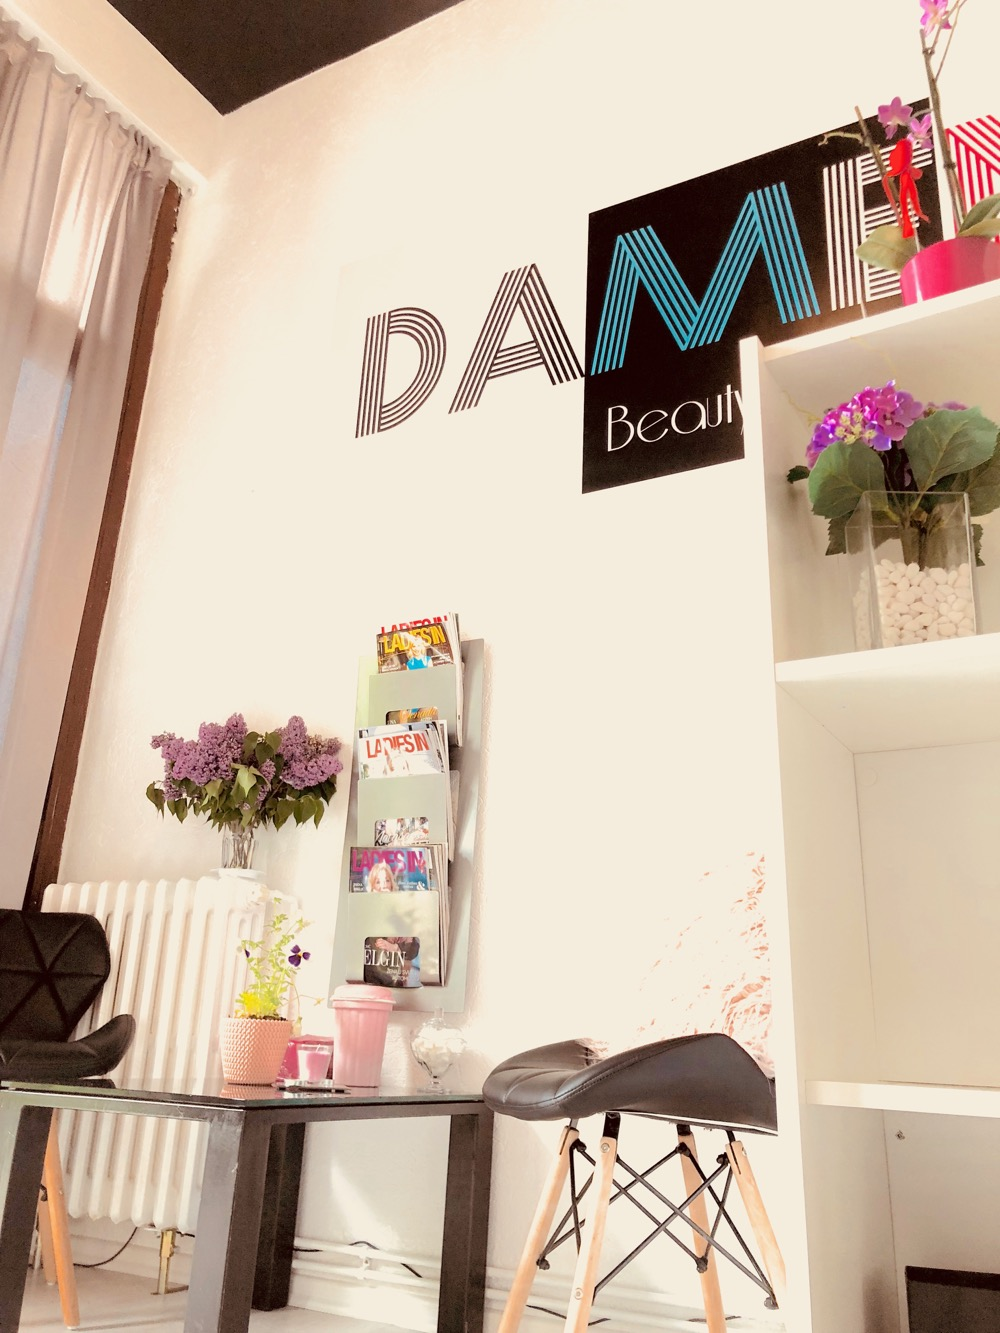 Damen Salon maderoterapija